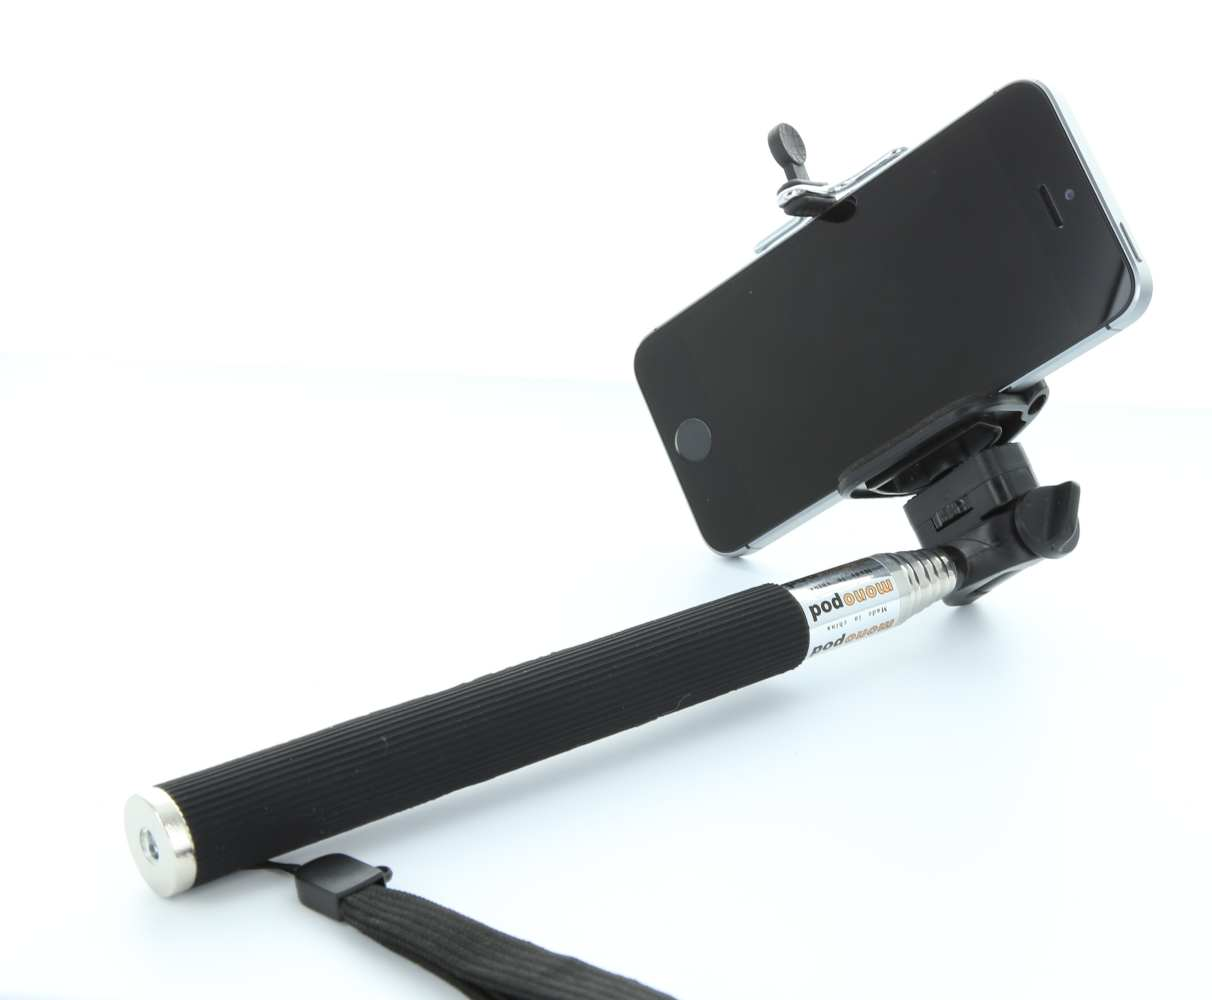 Selfie Stick for Gionee Elife S7